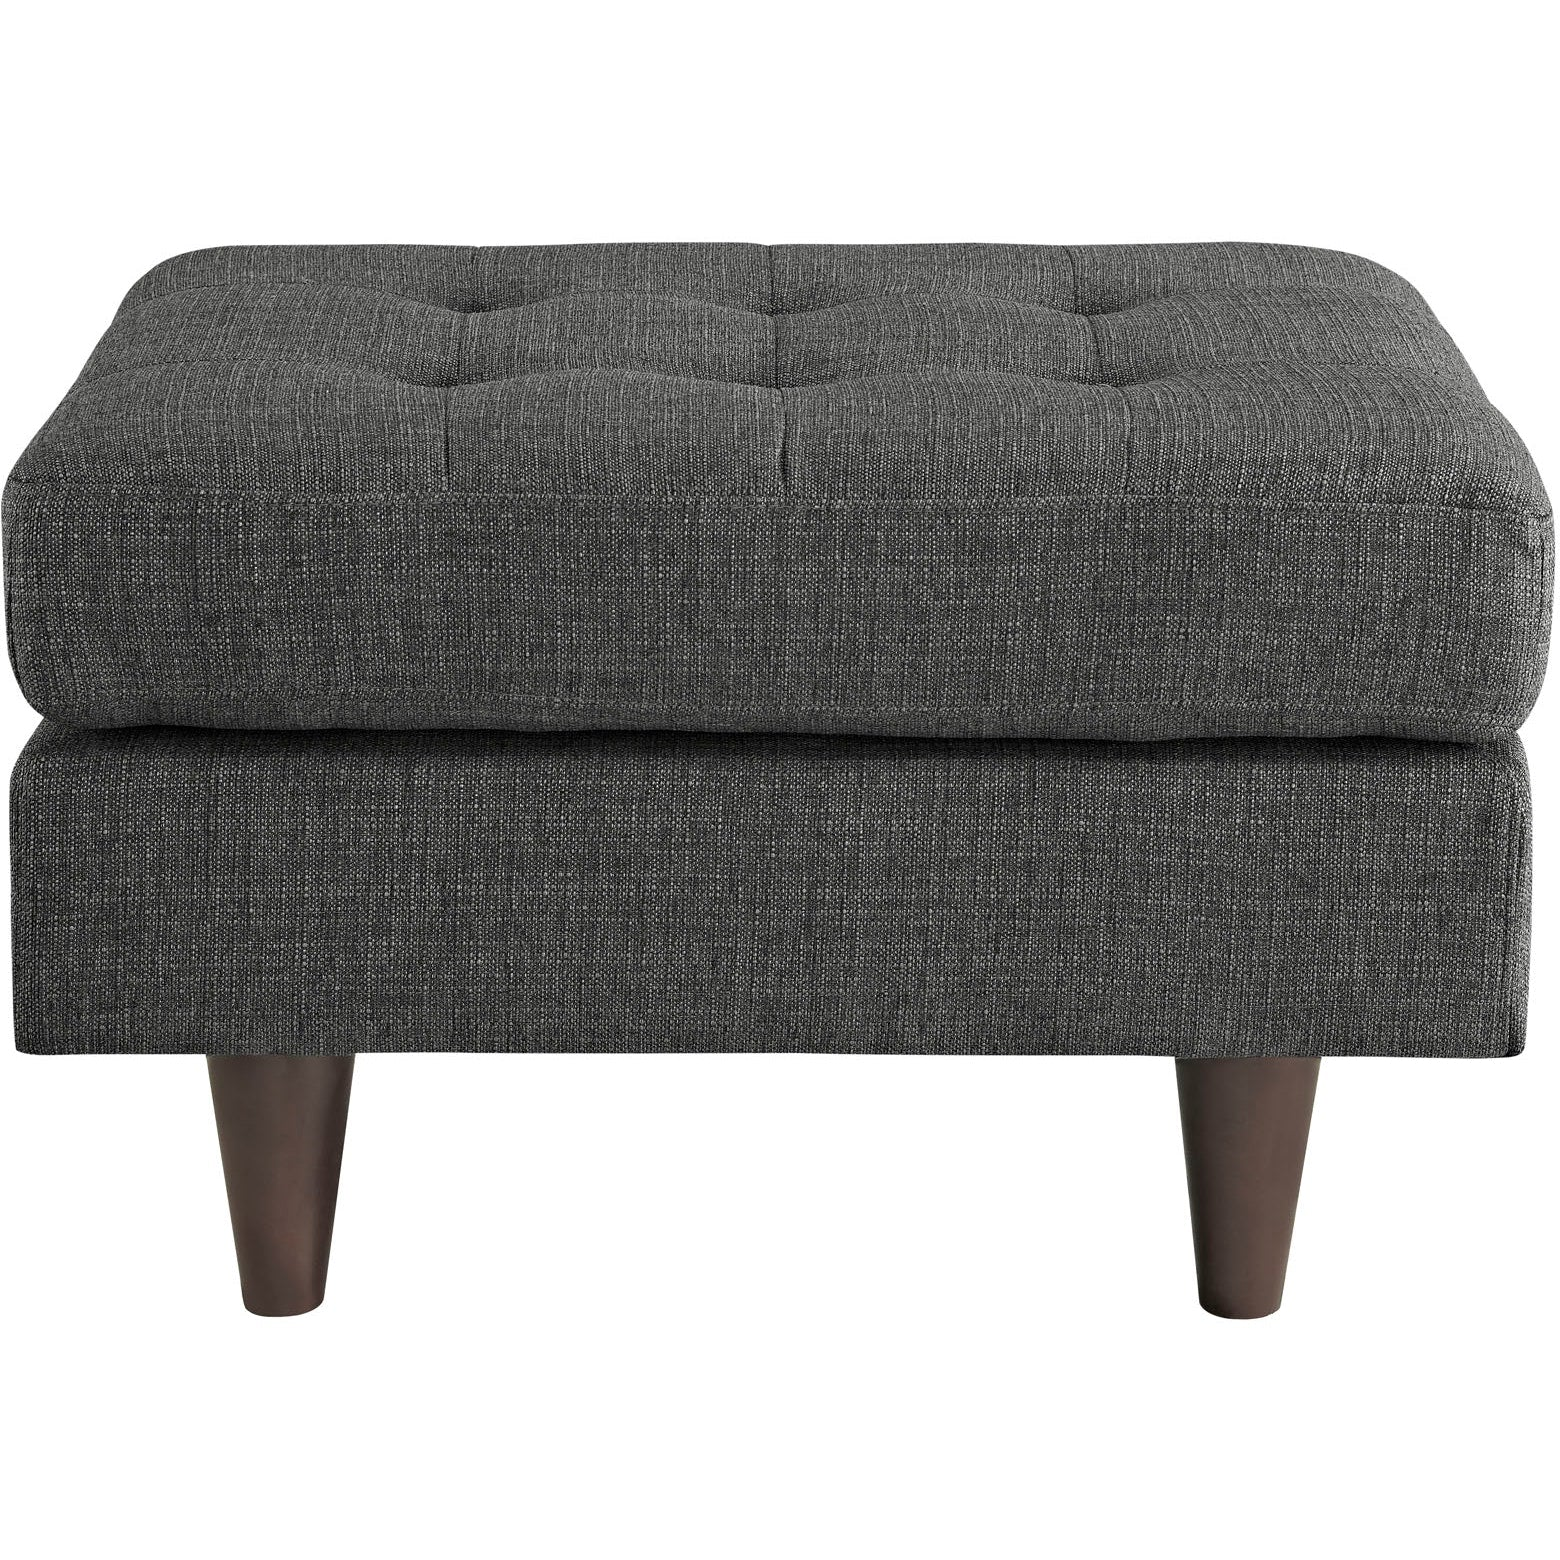 Empress Upholstered Fabric Ottoman - Gray